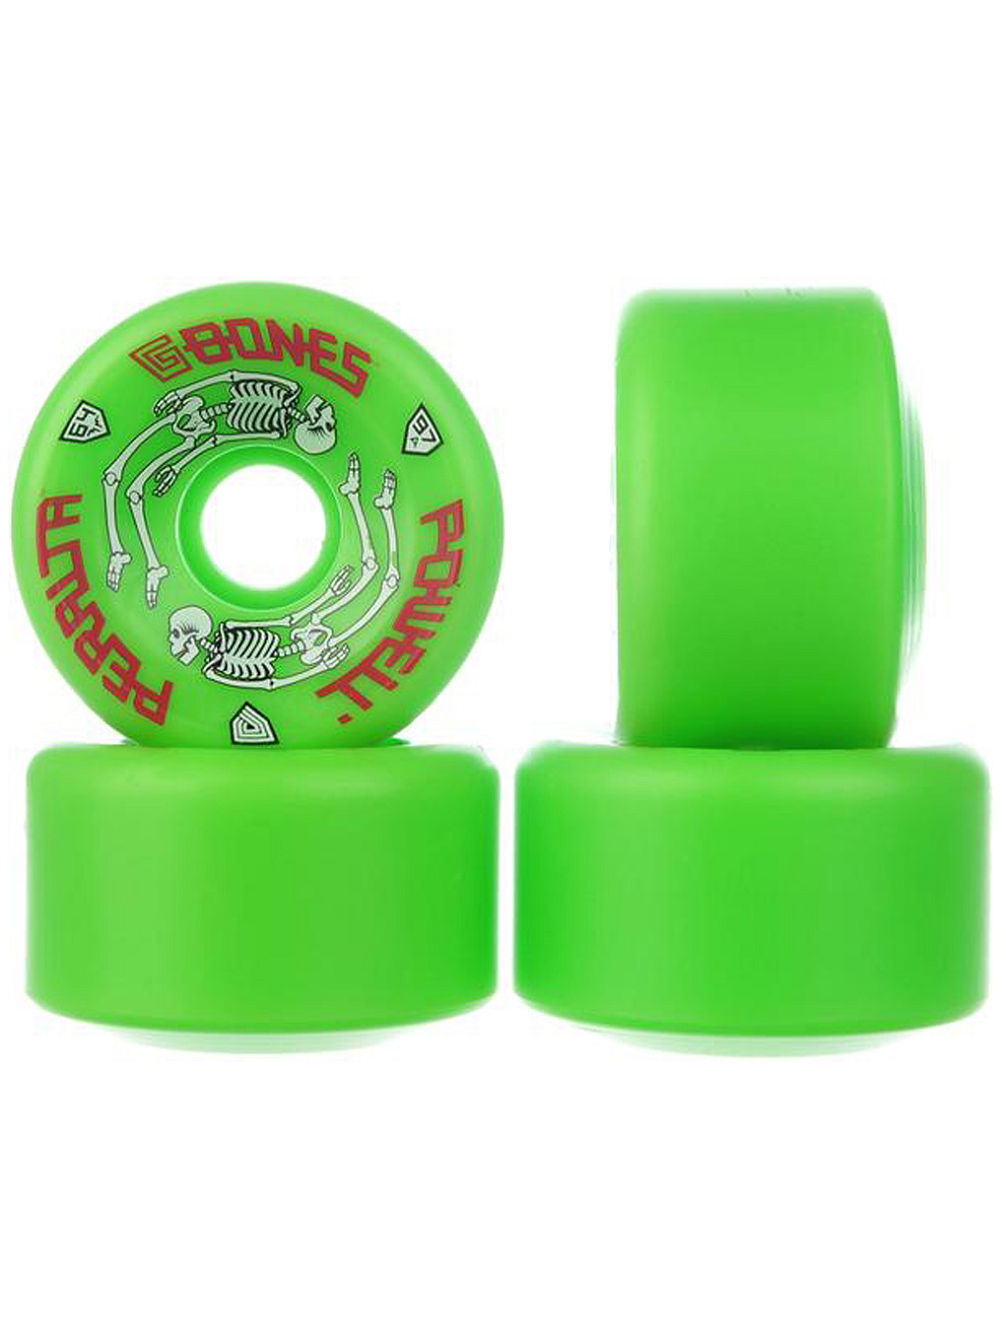 Original G-Bones 97A 64mm Wheels